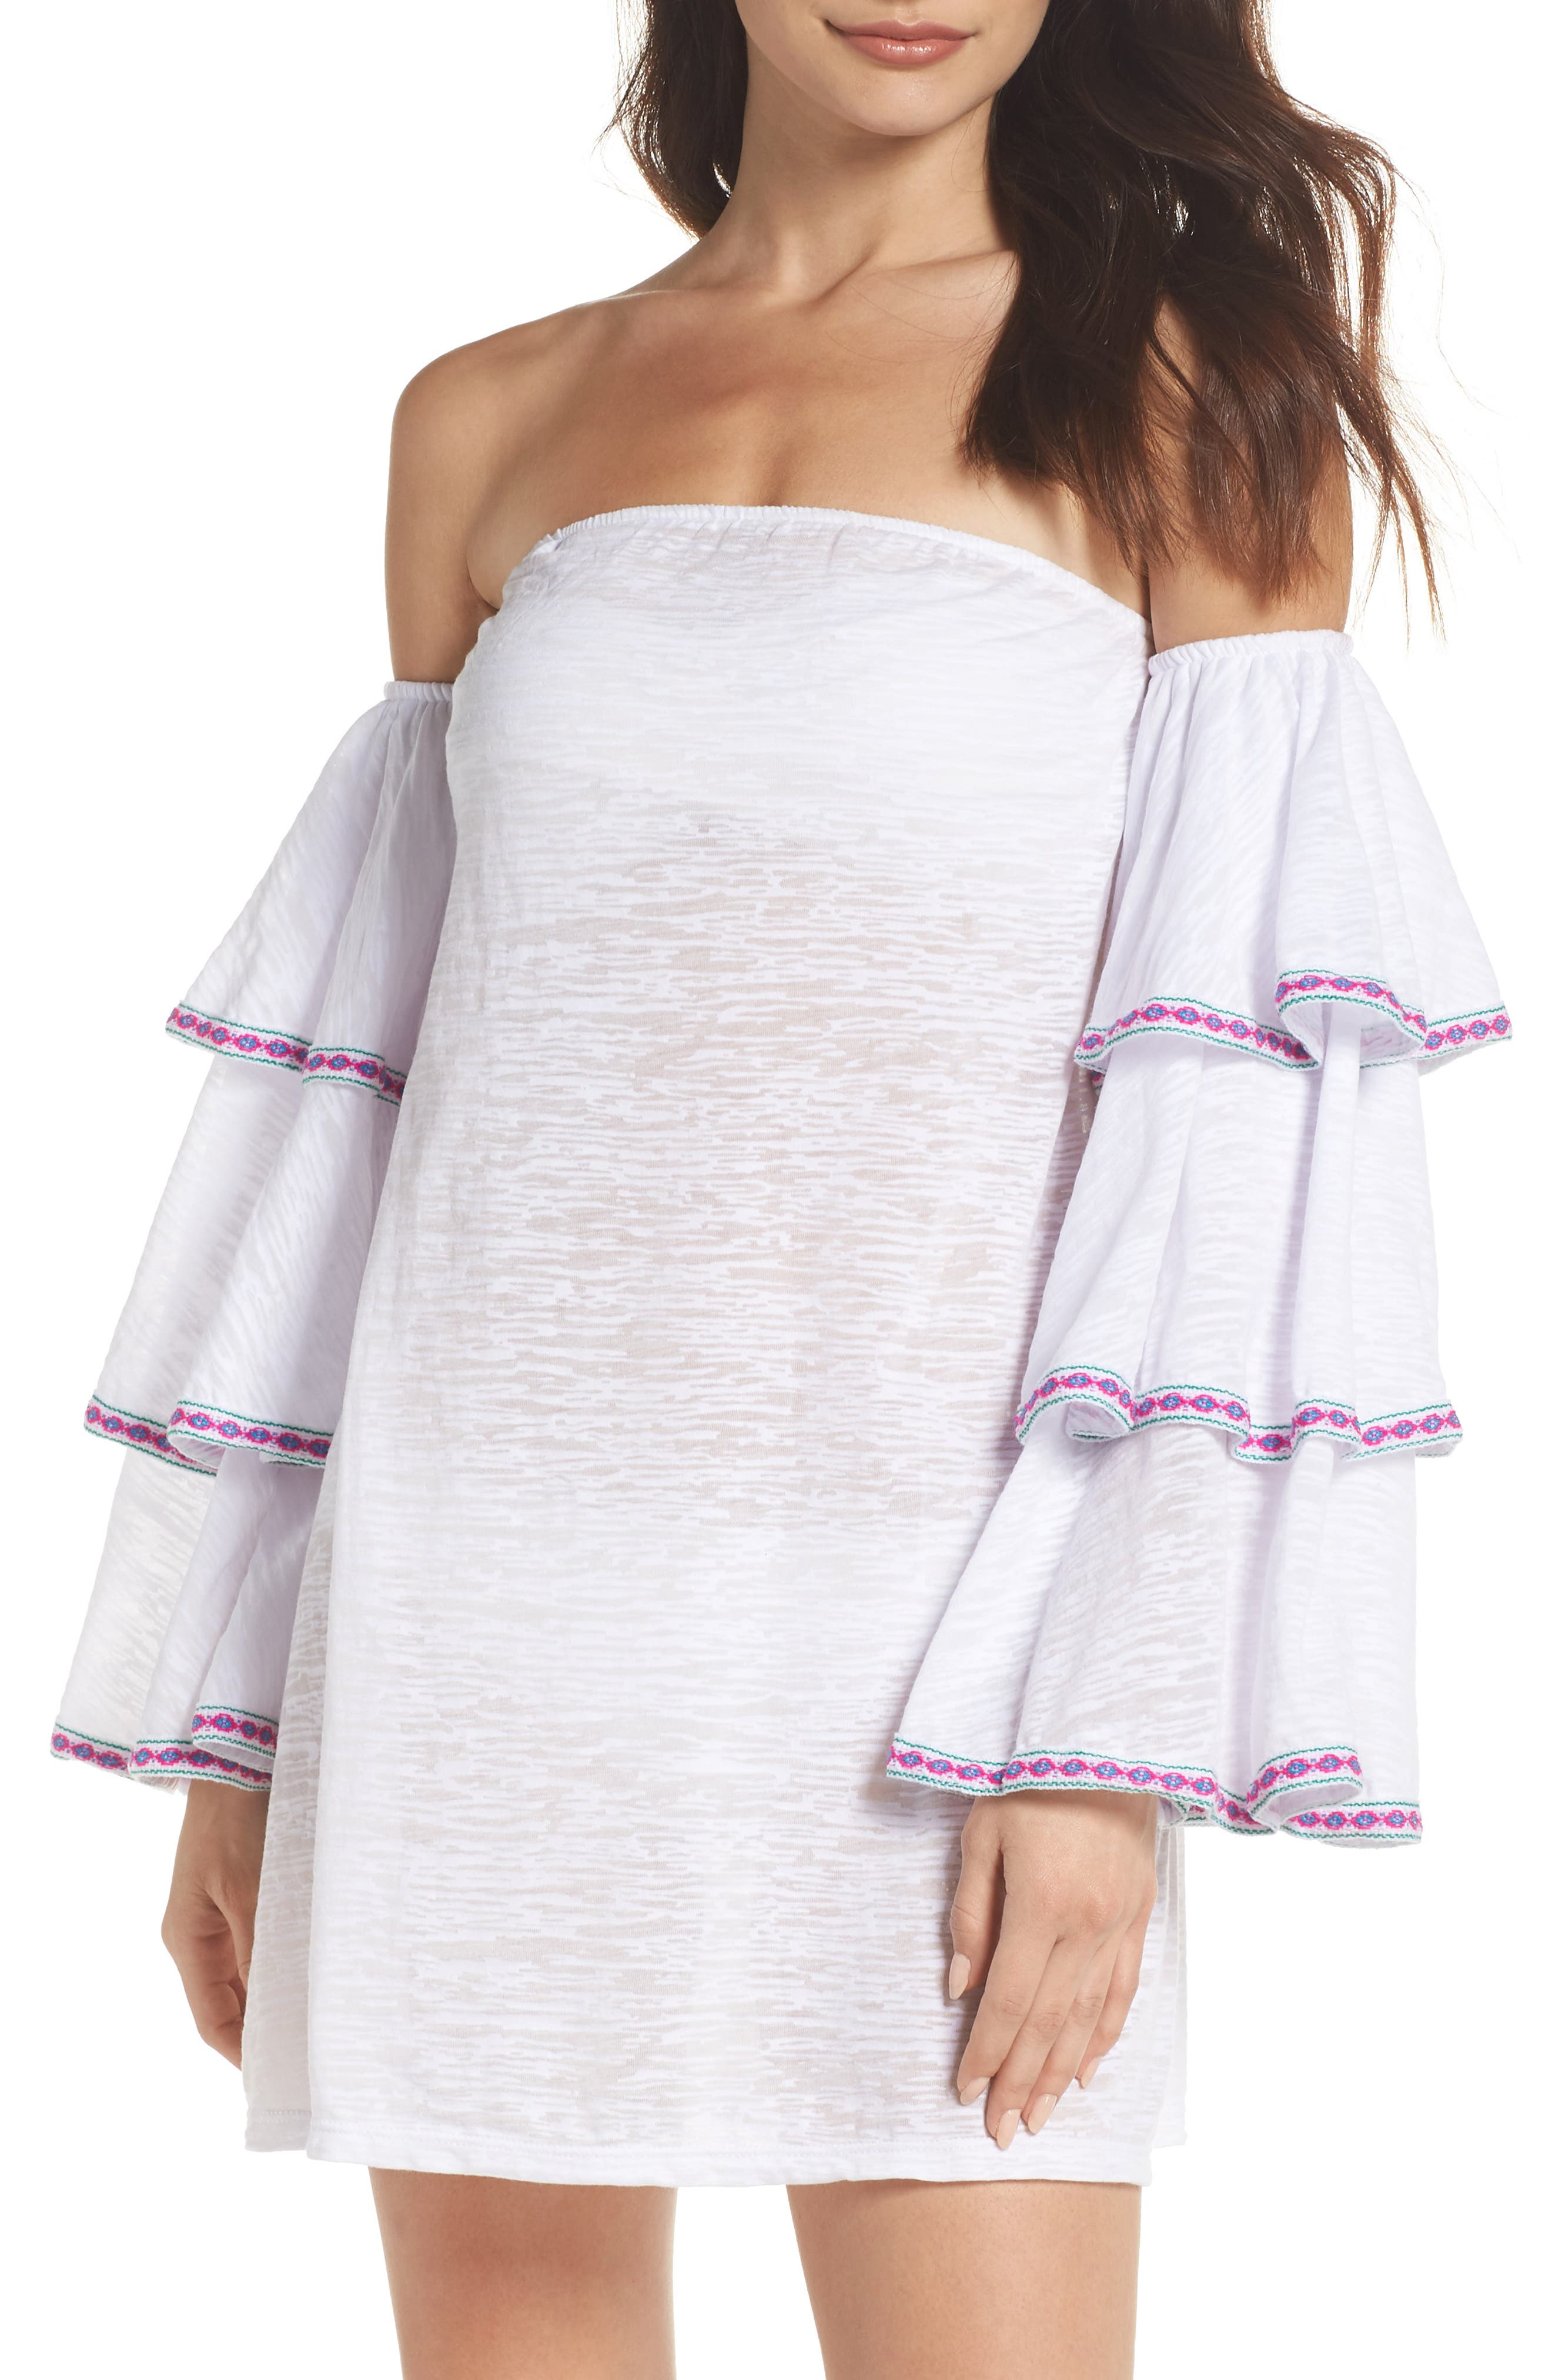 Off the Shoulder Cover-Up Dress,                             Main thumbnail 1, color,                             White